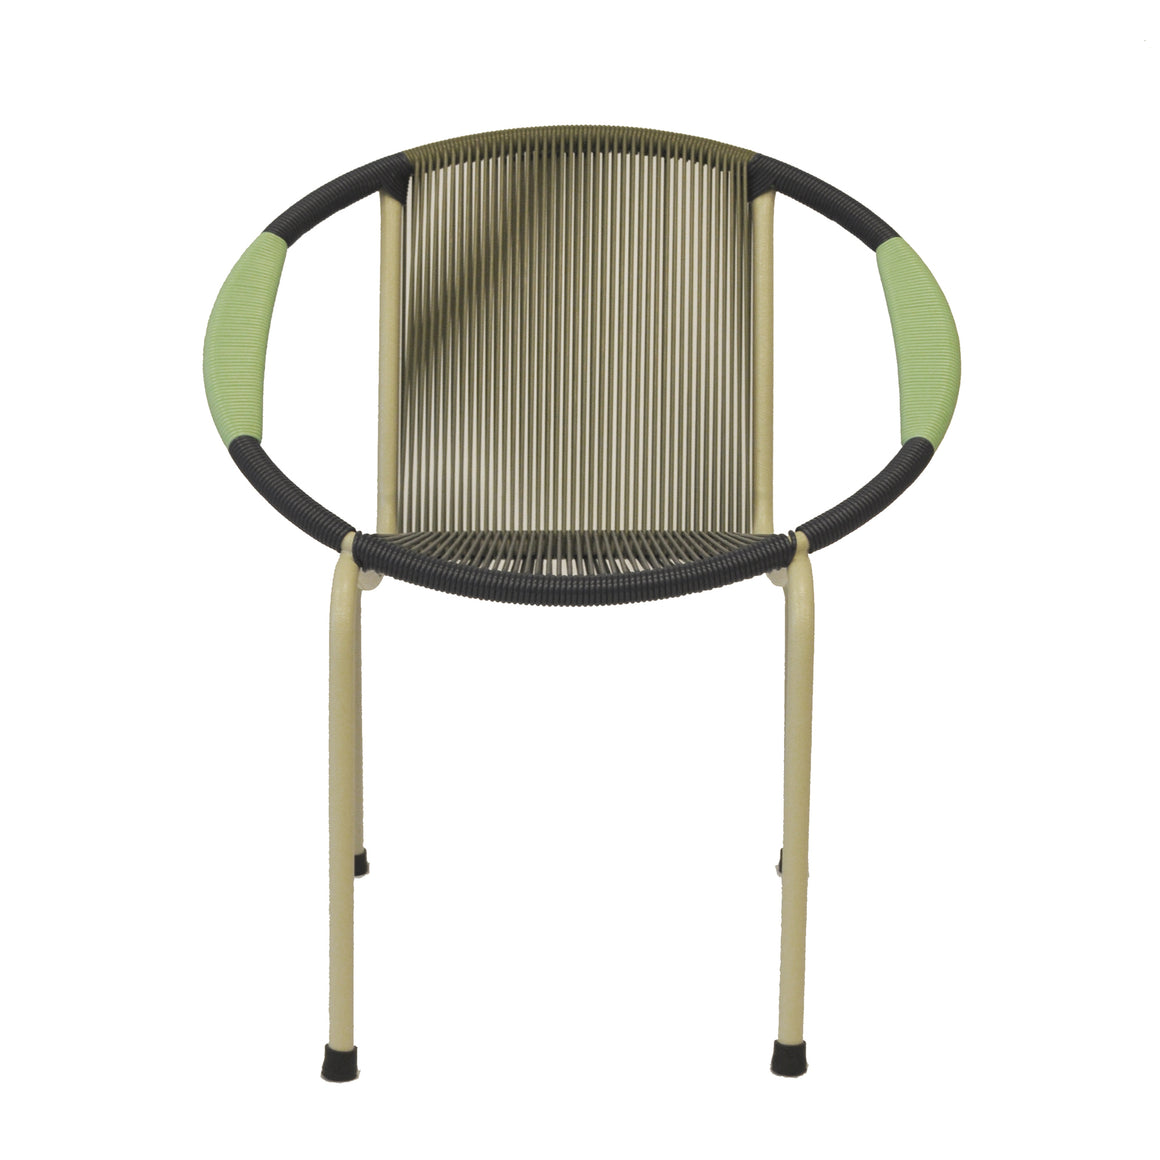 Merdeka Chair Lounge Tropicalia 2020 (Navy Blue + Olive Green 01)